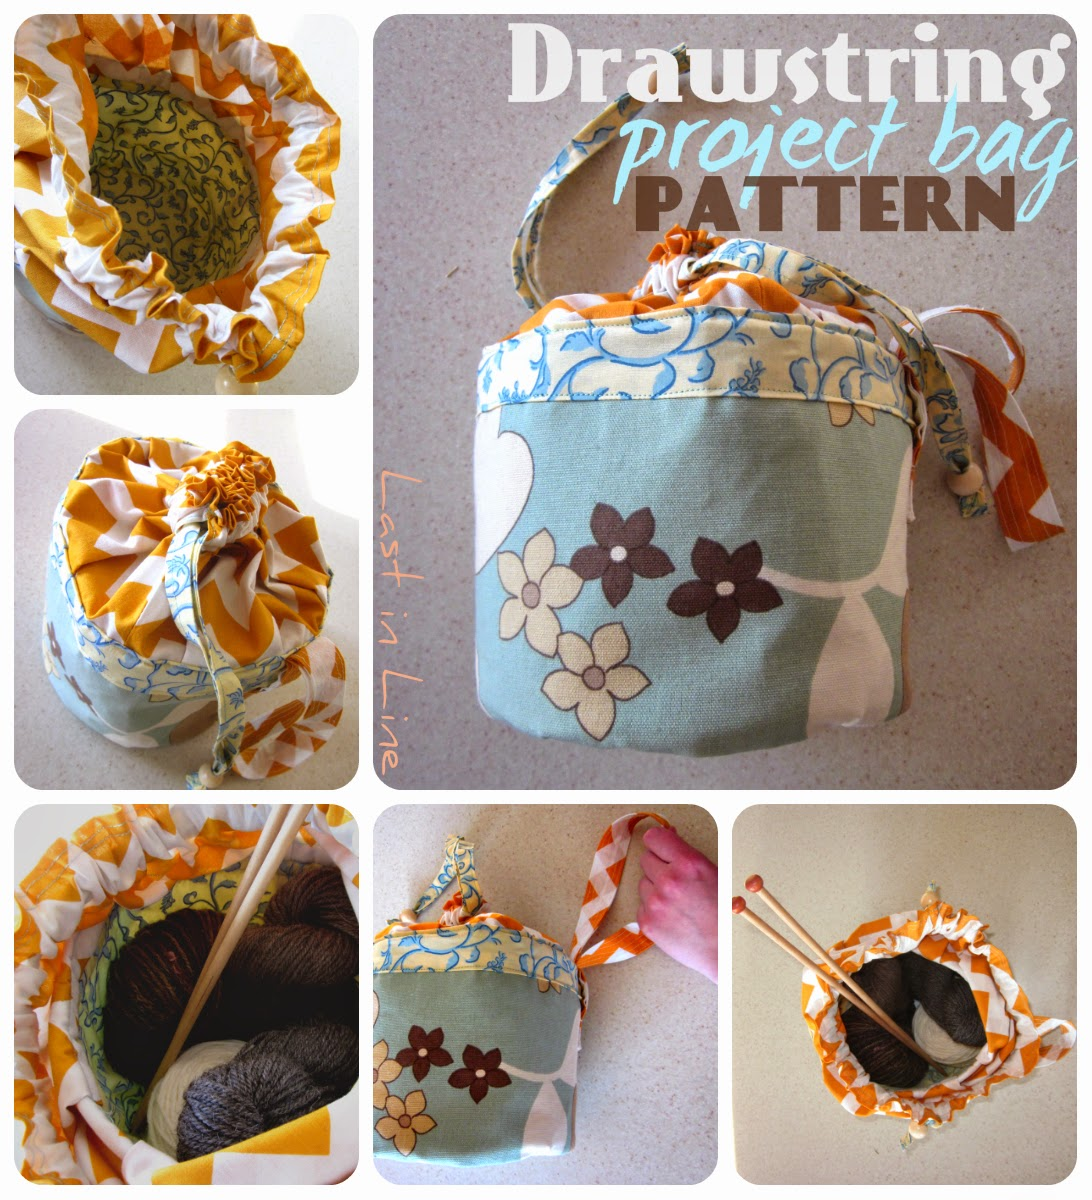 Last in Line Shop: Drawstring Project Bag Sewing Pattern